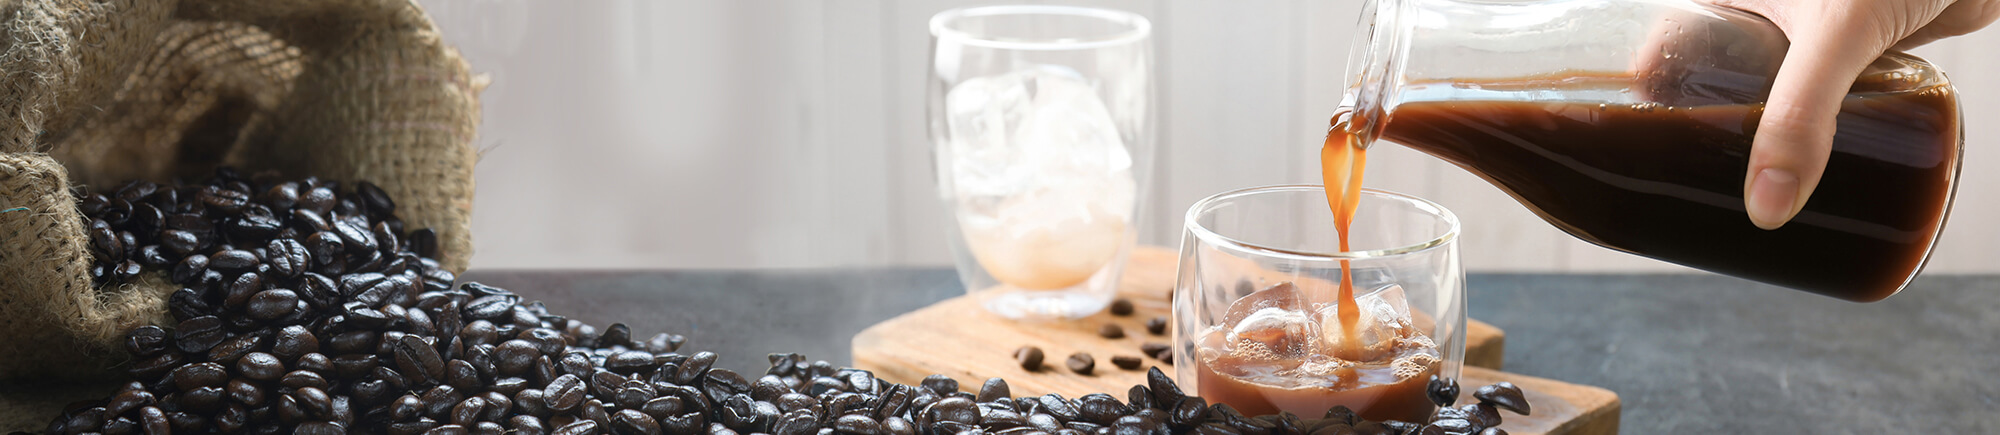 cold-brew-coffee-filtration-header